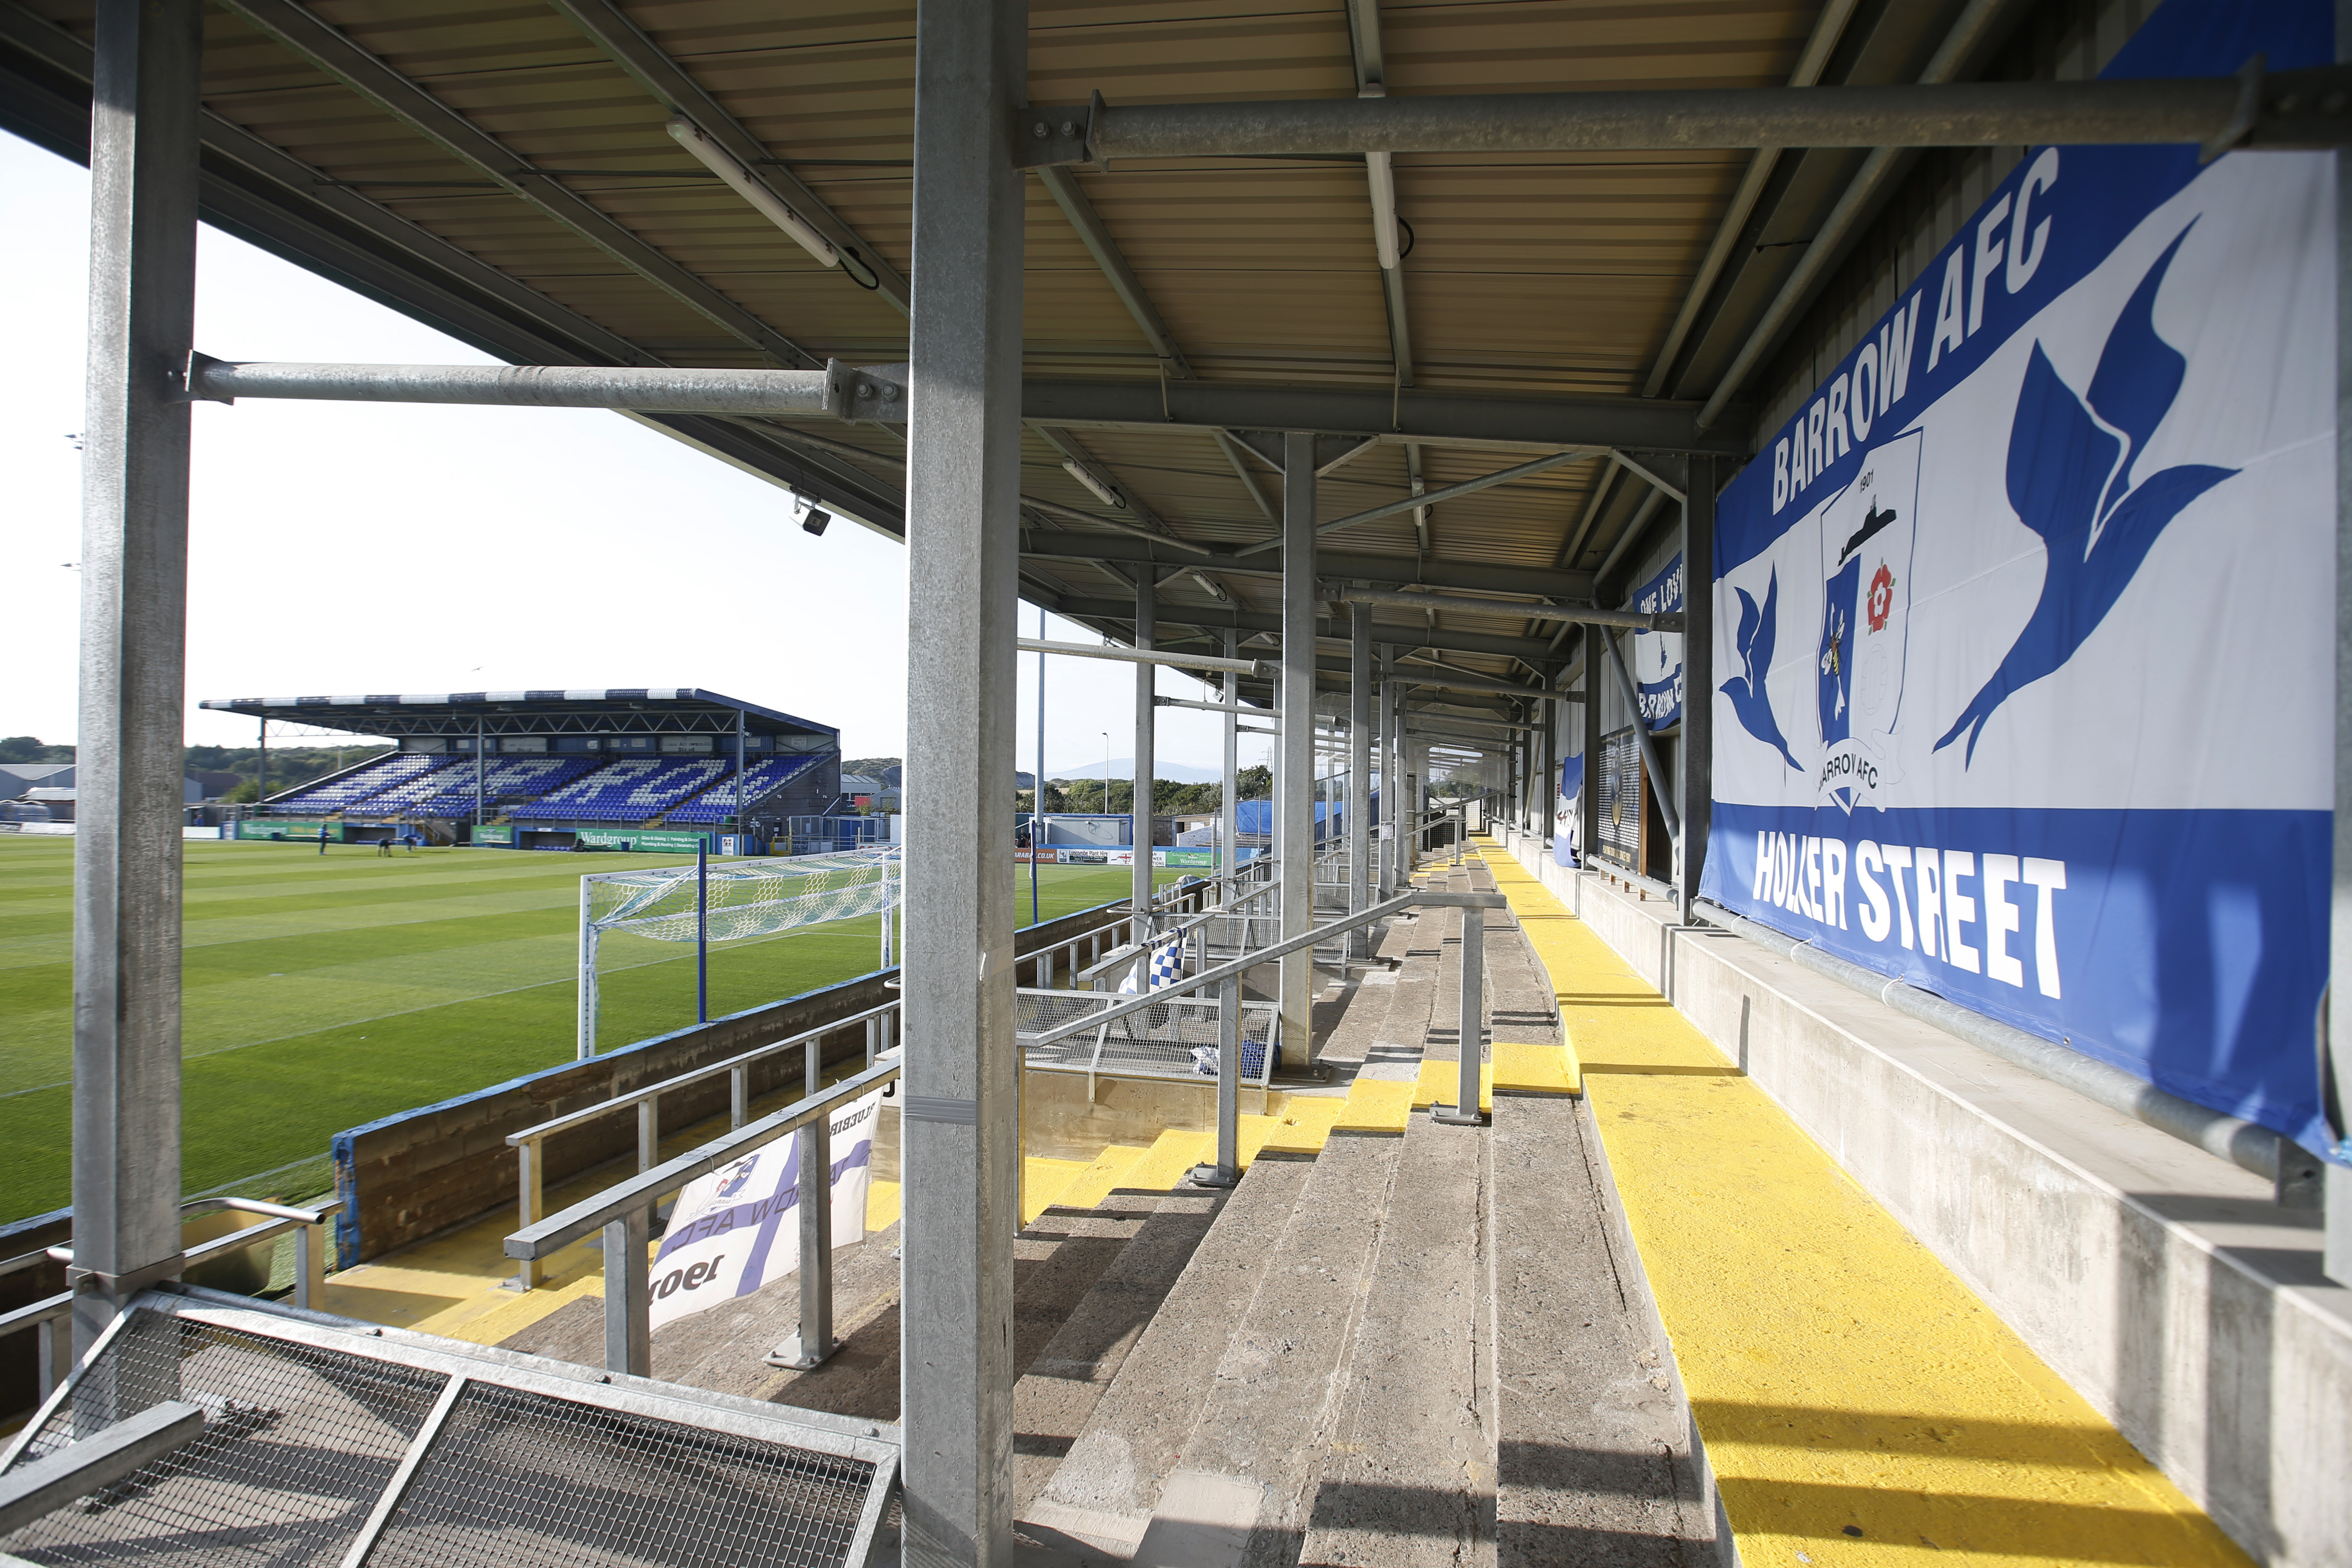 Soccer - England - Carabao Cup Second Round - Barrow v Aston Villa - Holker Street, Barrow-in-Furness, Britain - August 24, 2021 General view inside the stadium before the match Action Images via Reuters/Ed Sykes - UP1EH8O1CVR4G